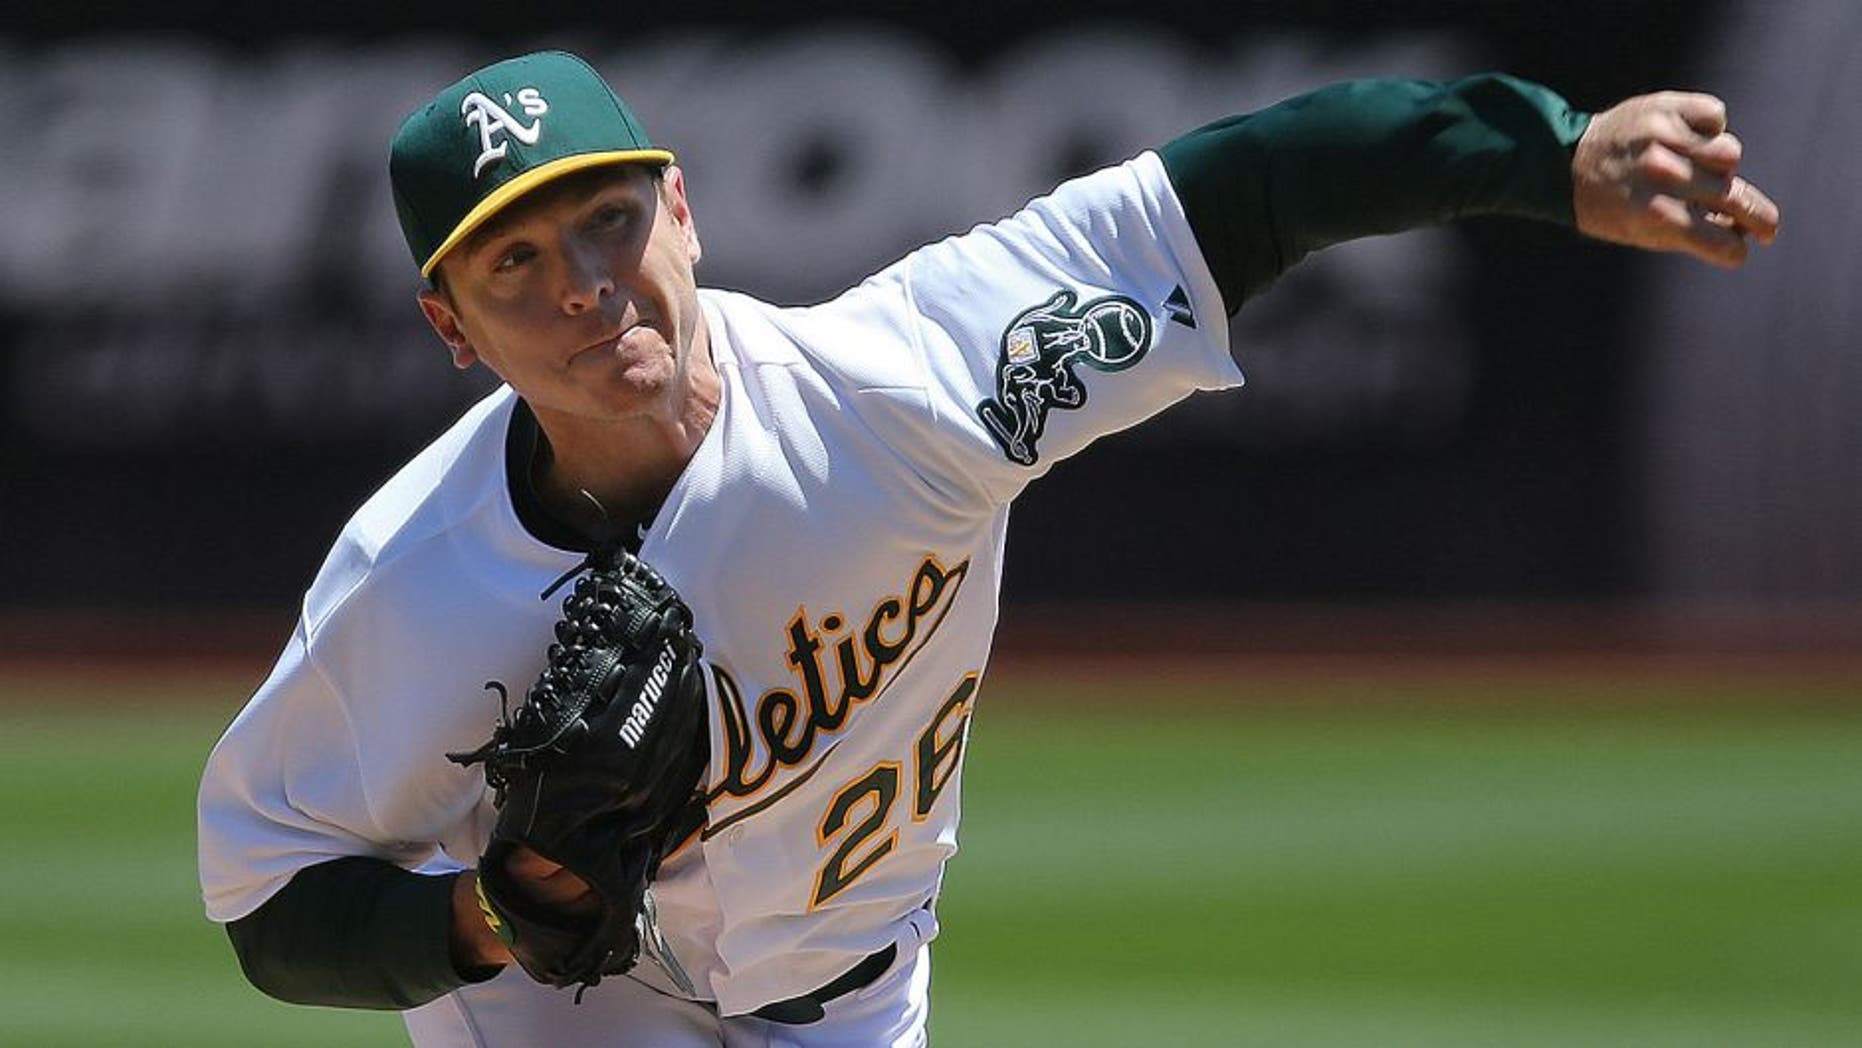 May 27, 2015; Oakland, CA, USA; Oakland Athletics starting pitcher Scott Kazmir (26) pitches the ball against the Detroit Tigers during the second inning at O.co Coliseum. Mandatory Credit: Kelley L Cox-USA TODAY Sports